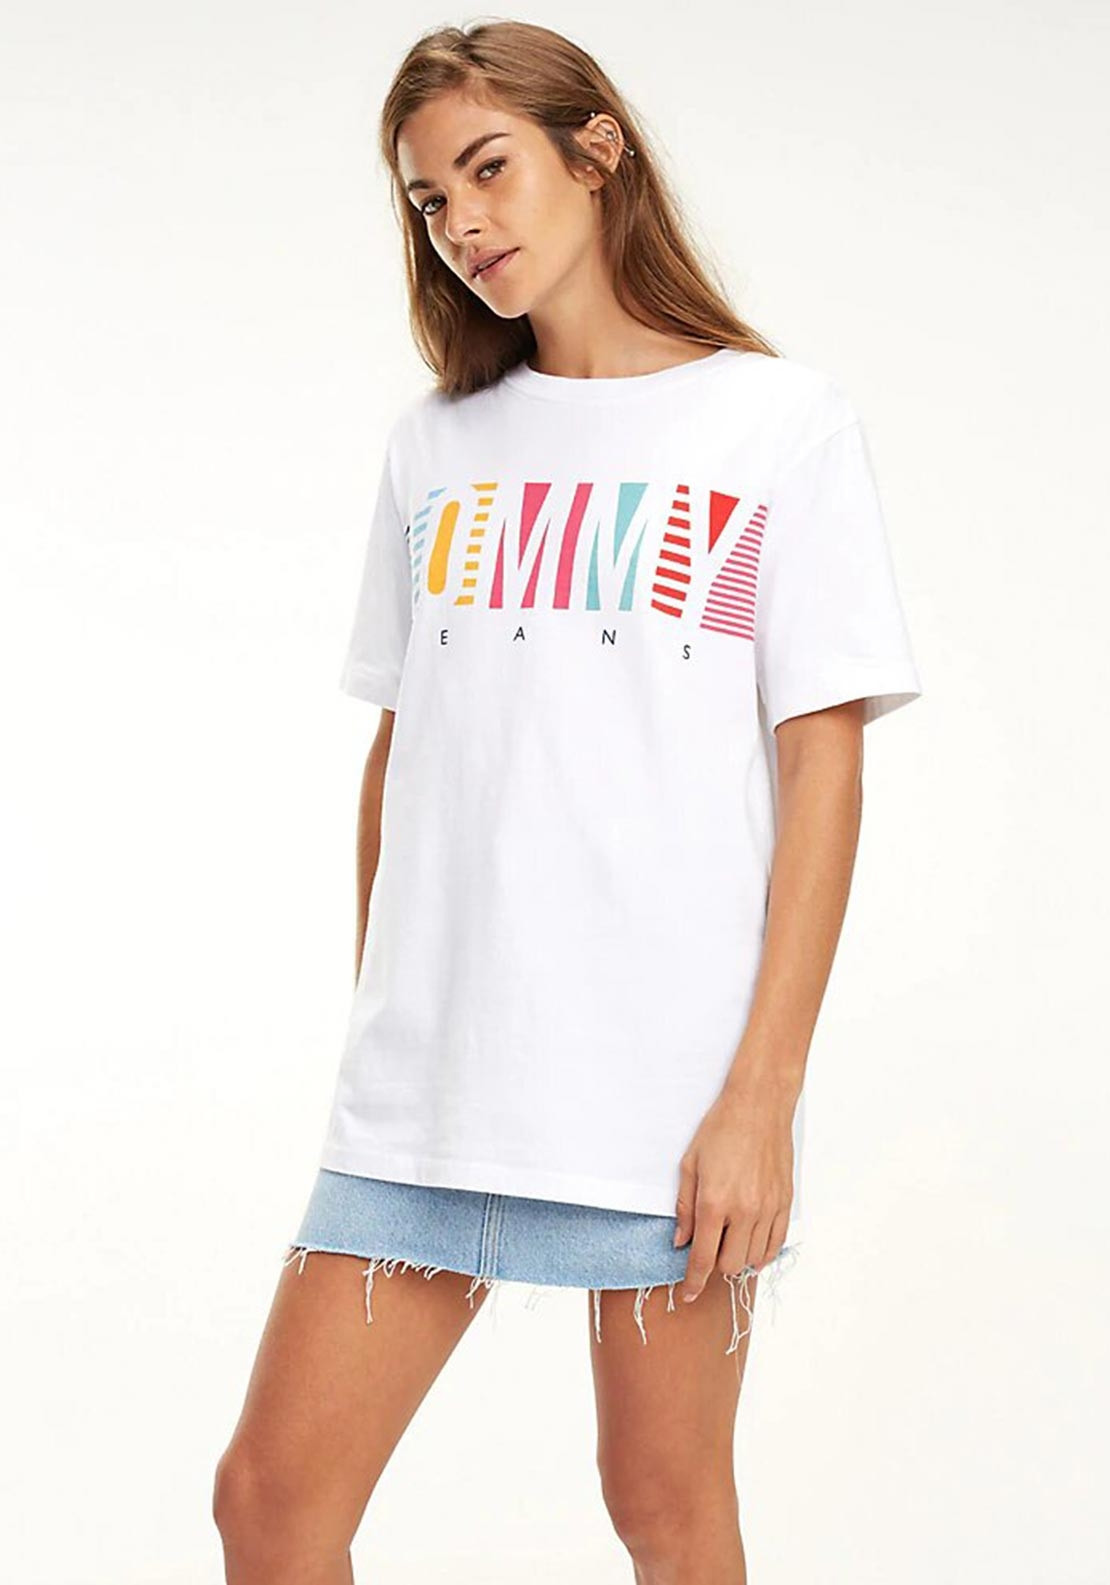 b3826a2ce Tommy Jeans Womens Colour Block Logo T-Shirt, White. Be the first to review  this product